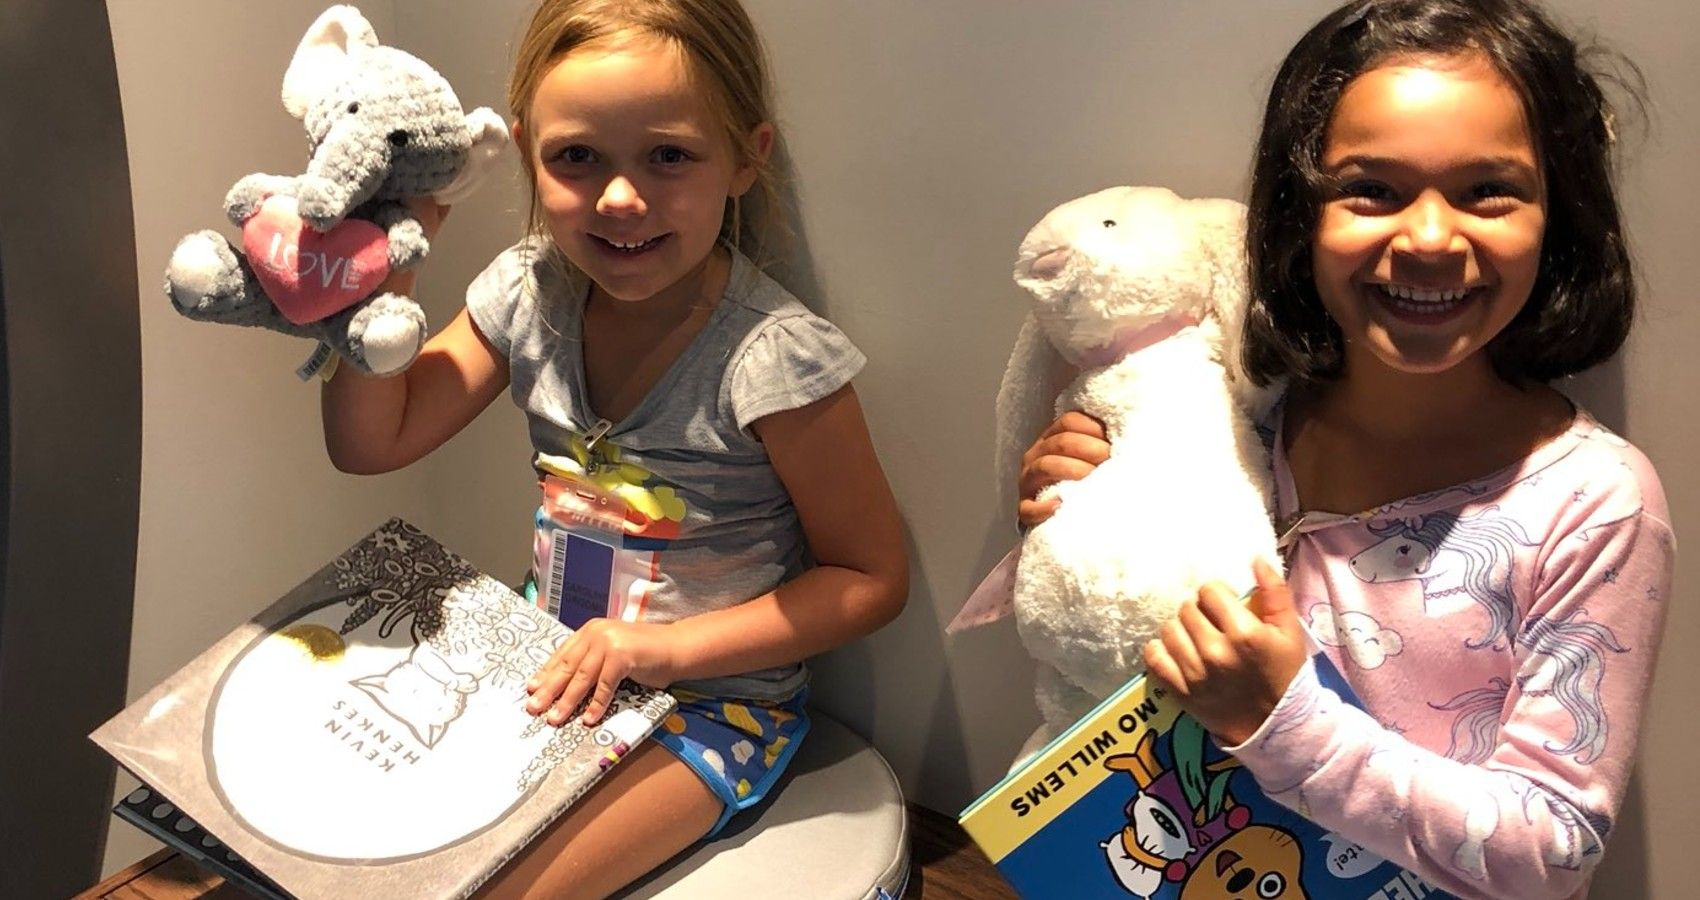 Kids More Willing To Read If Favorite Plush Toy Sleeps At Library